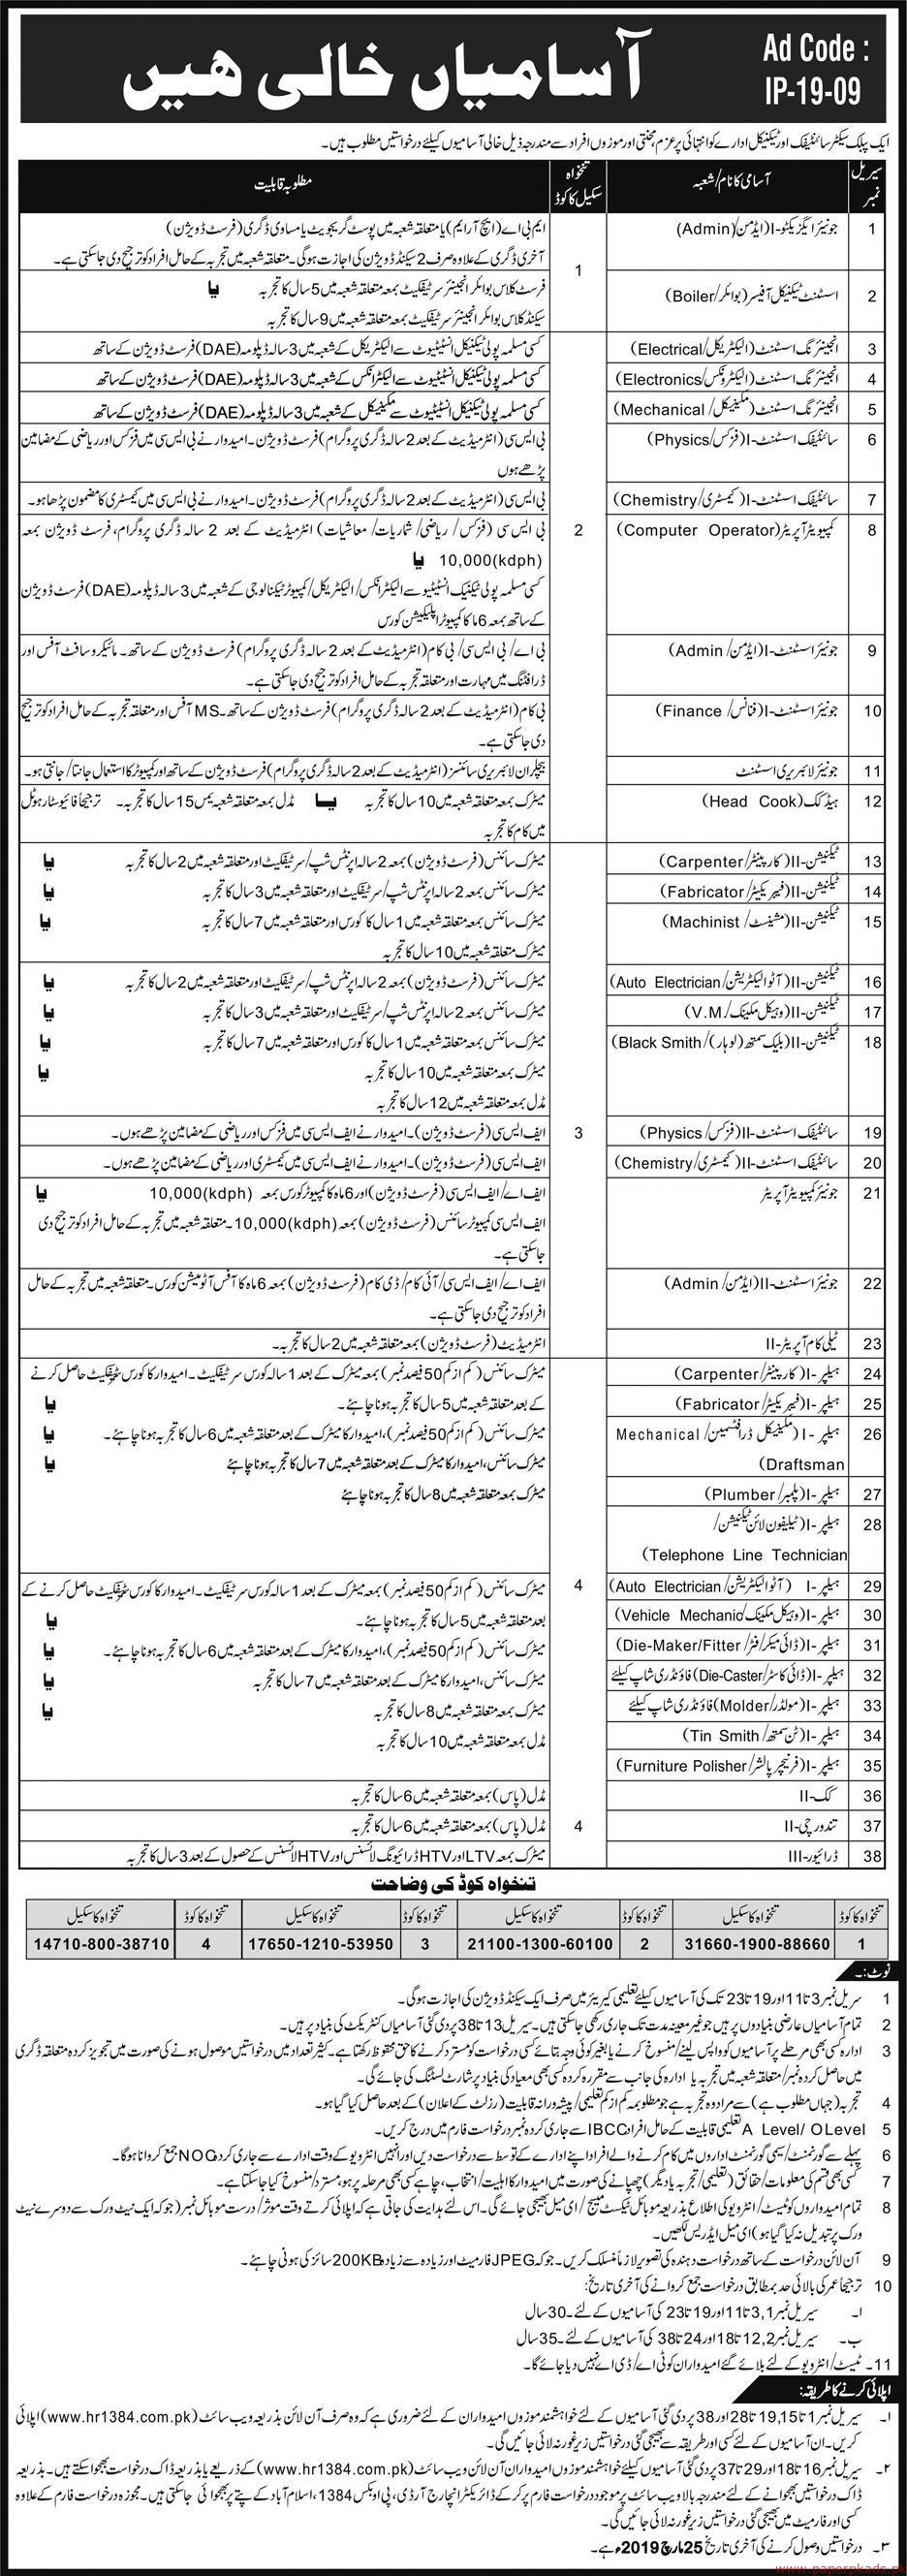 Public Sector Scientific and Technical Organization Latest Jobs 2019